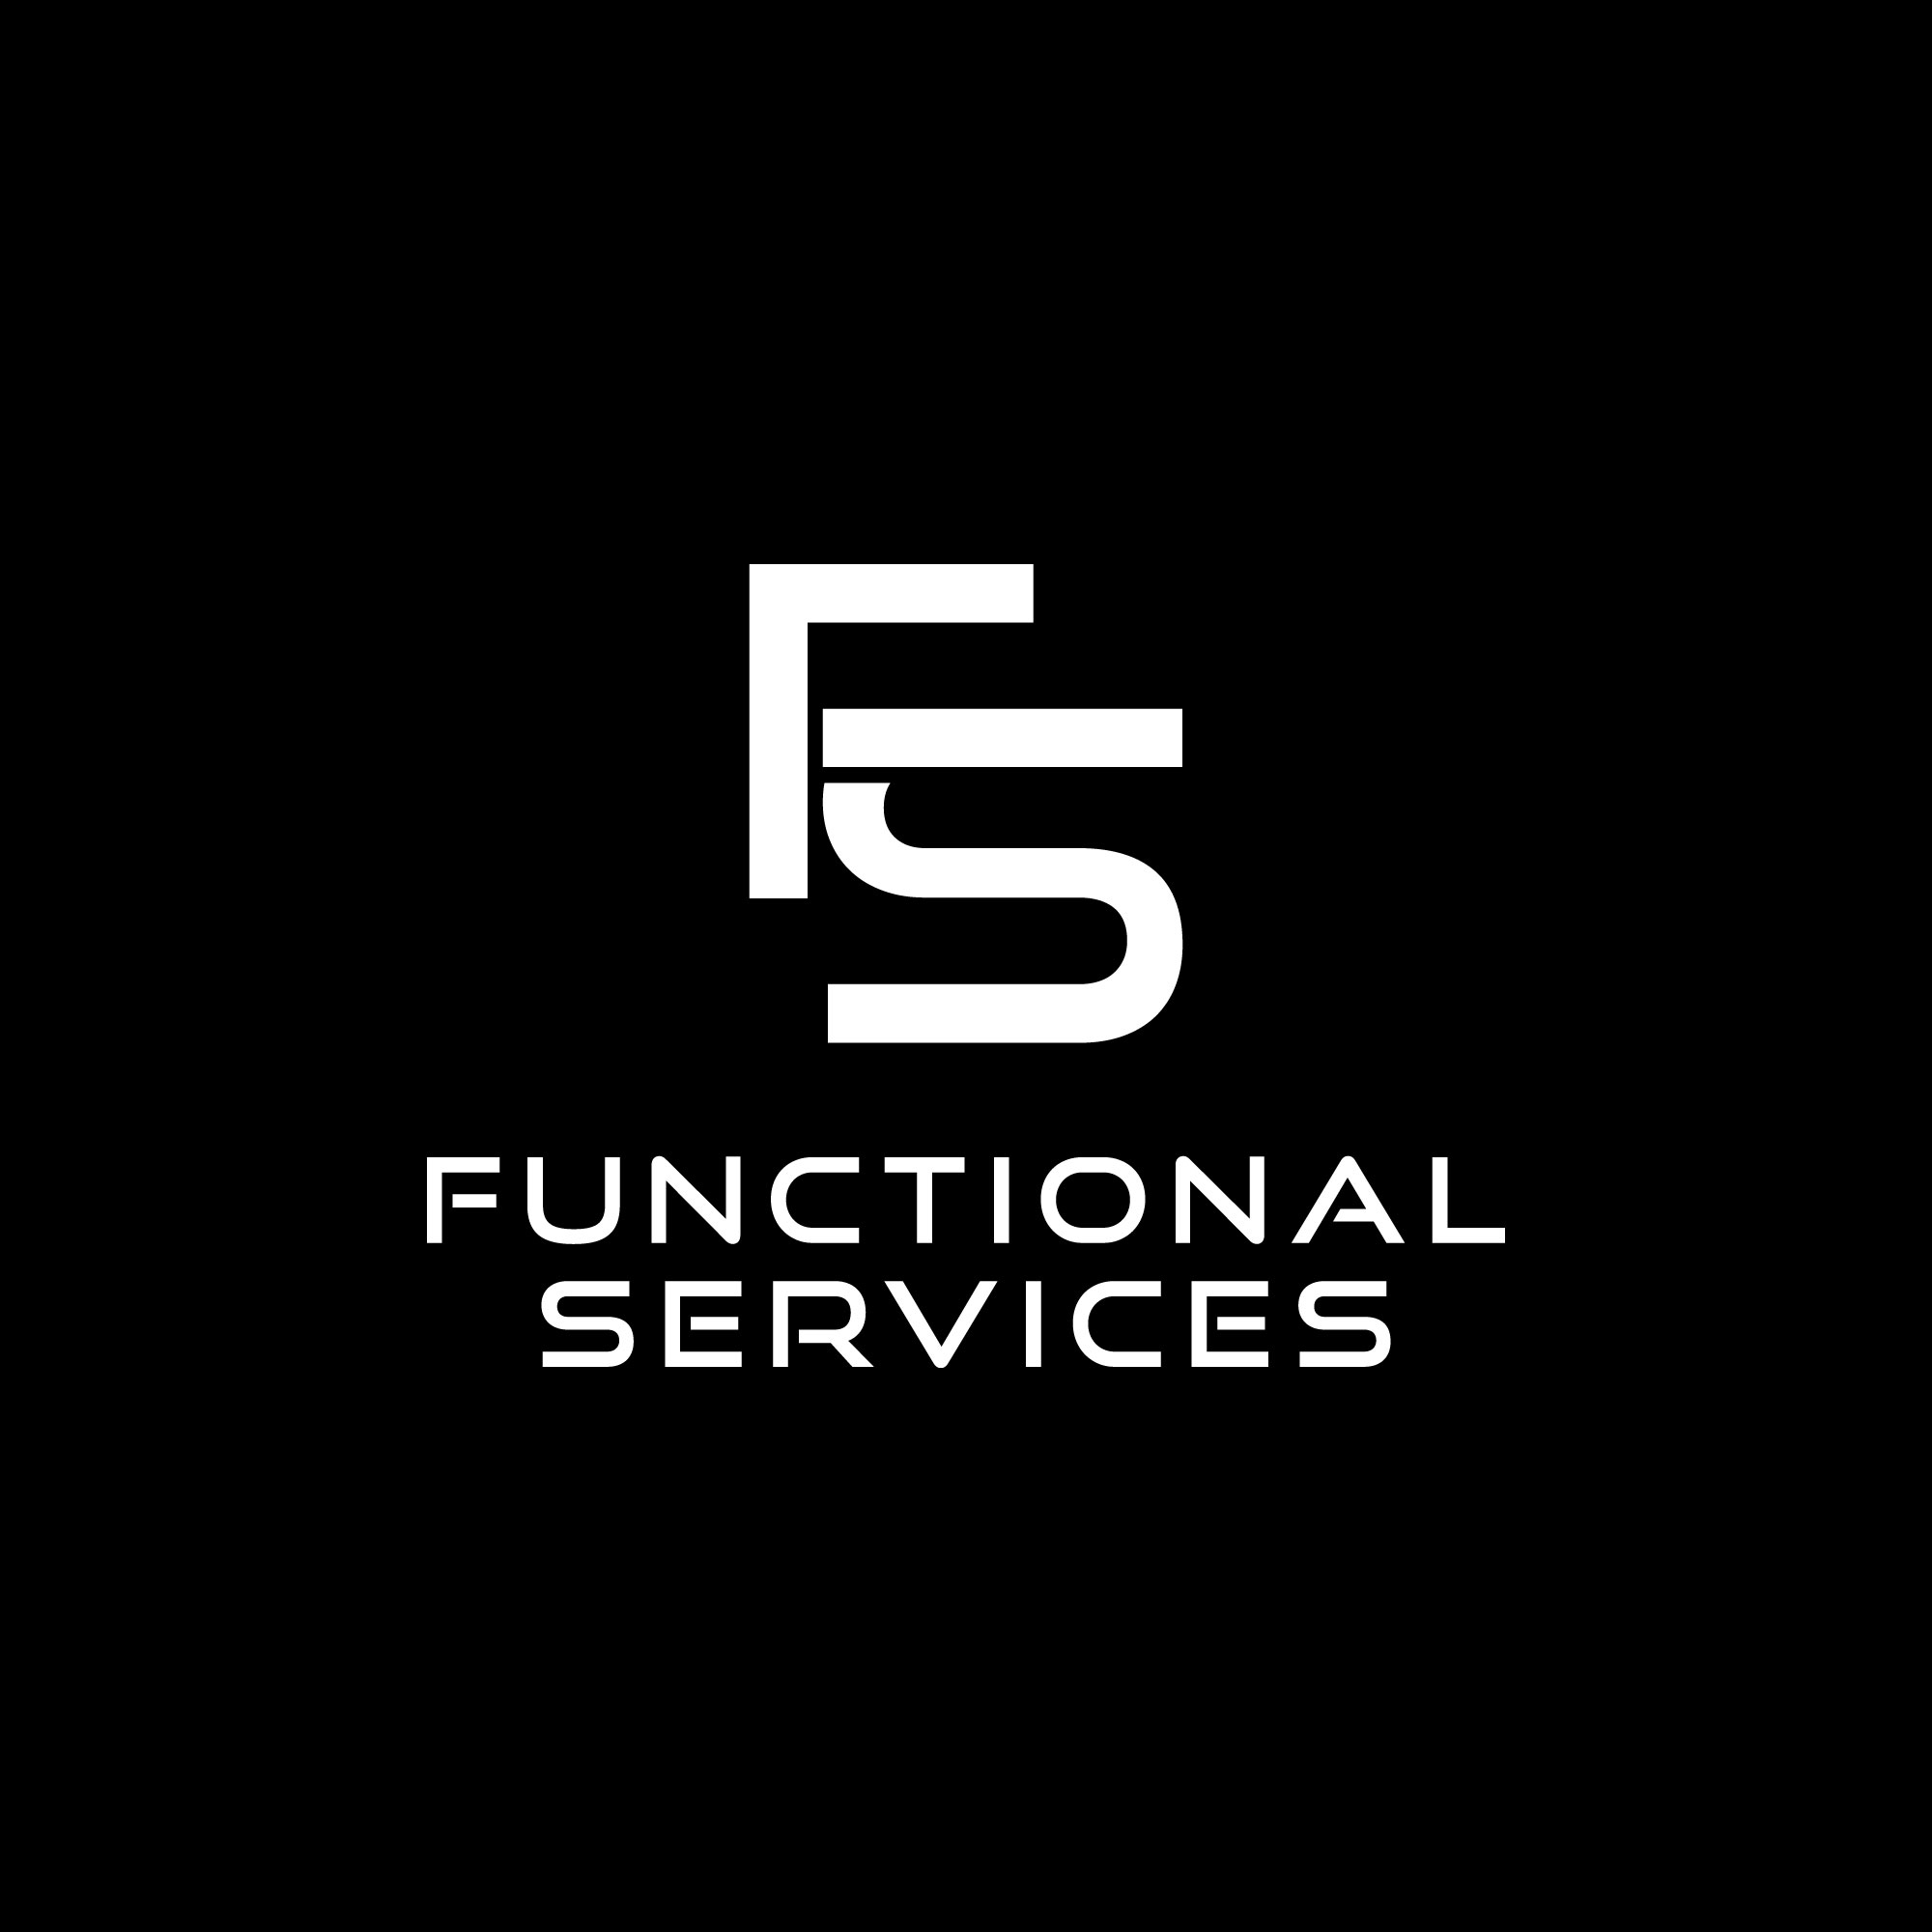 Functional Services A Professional Disinfection & Sanitization Services